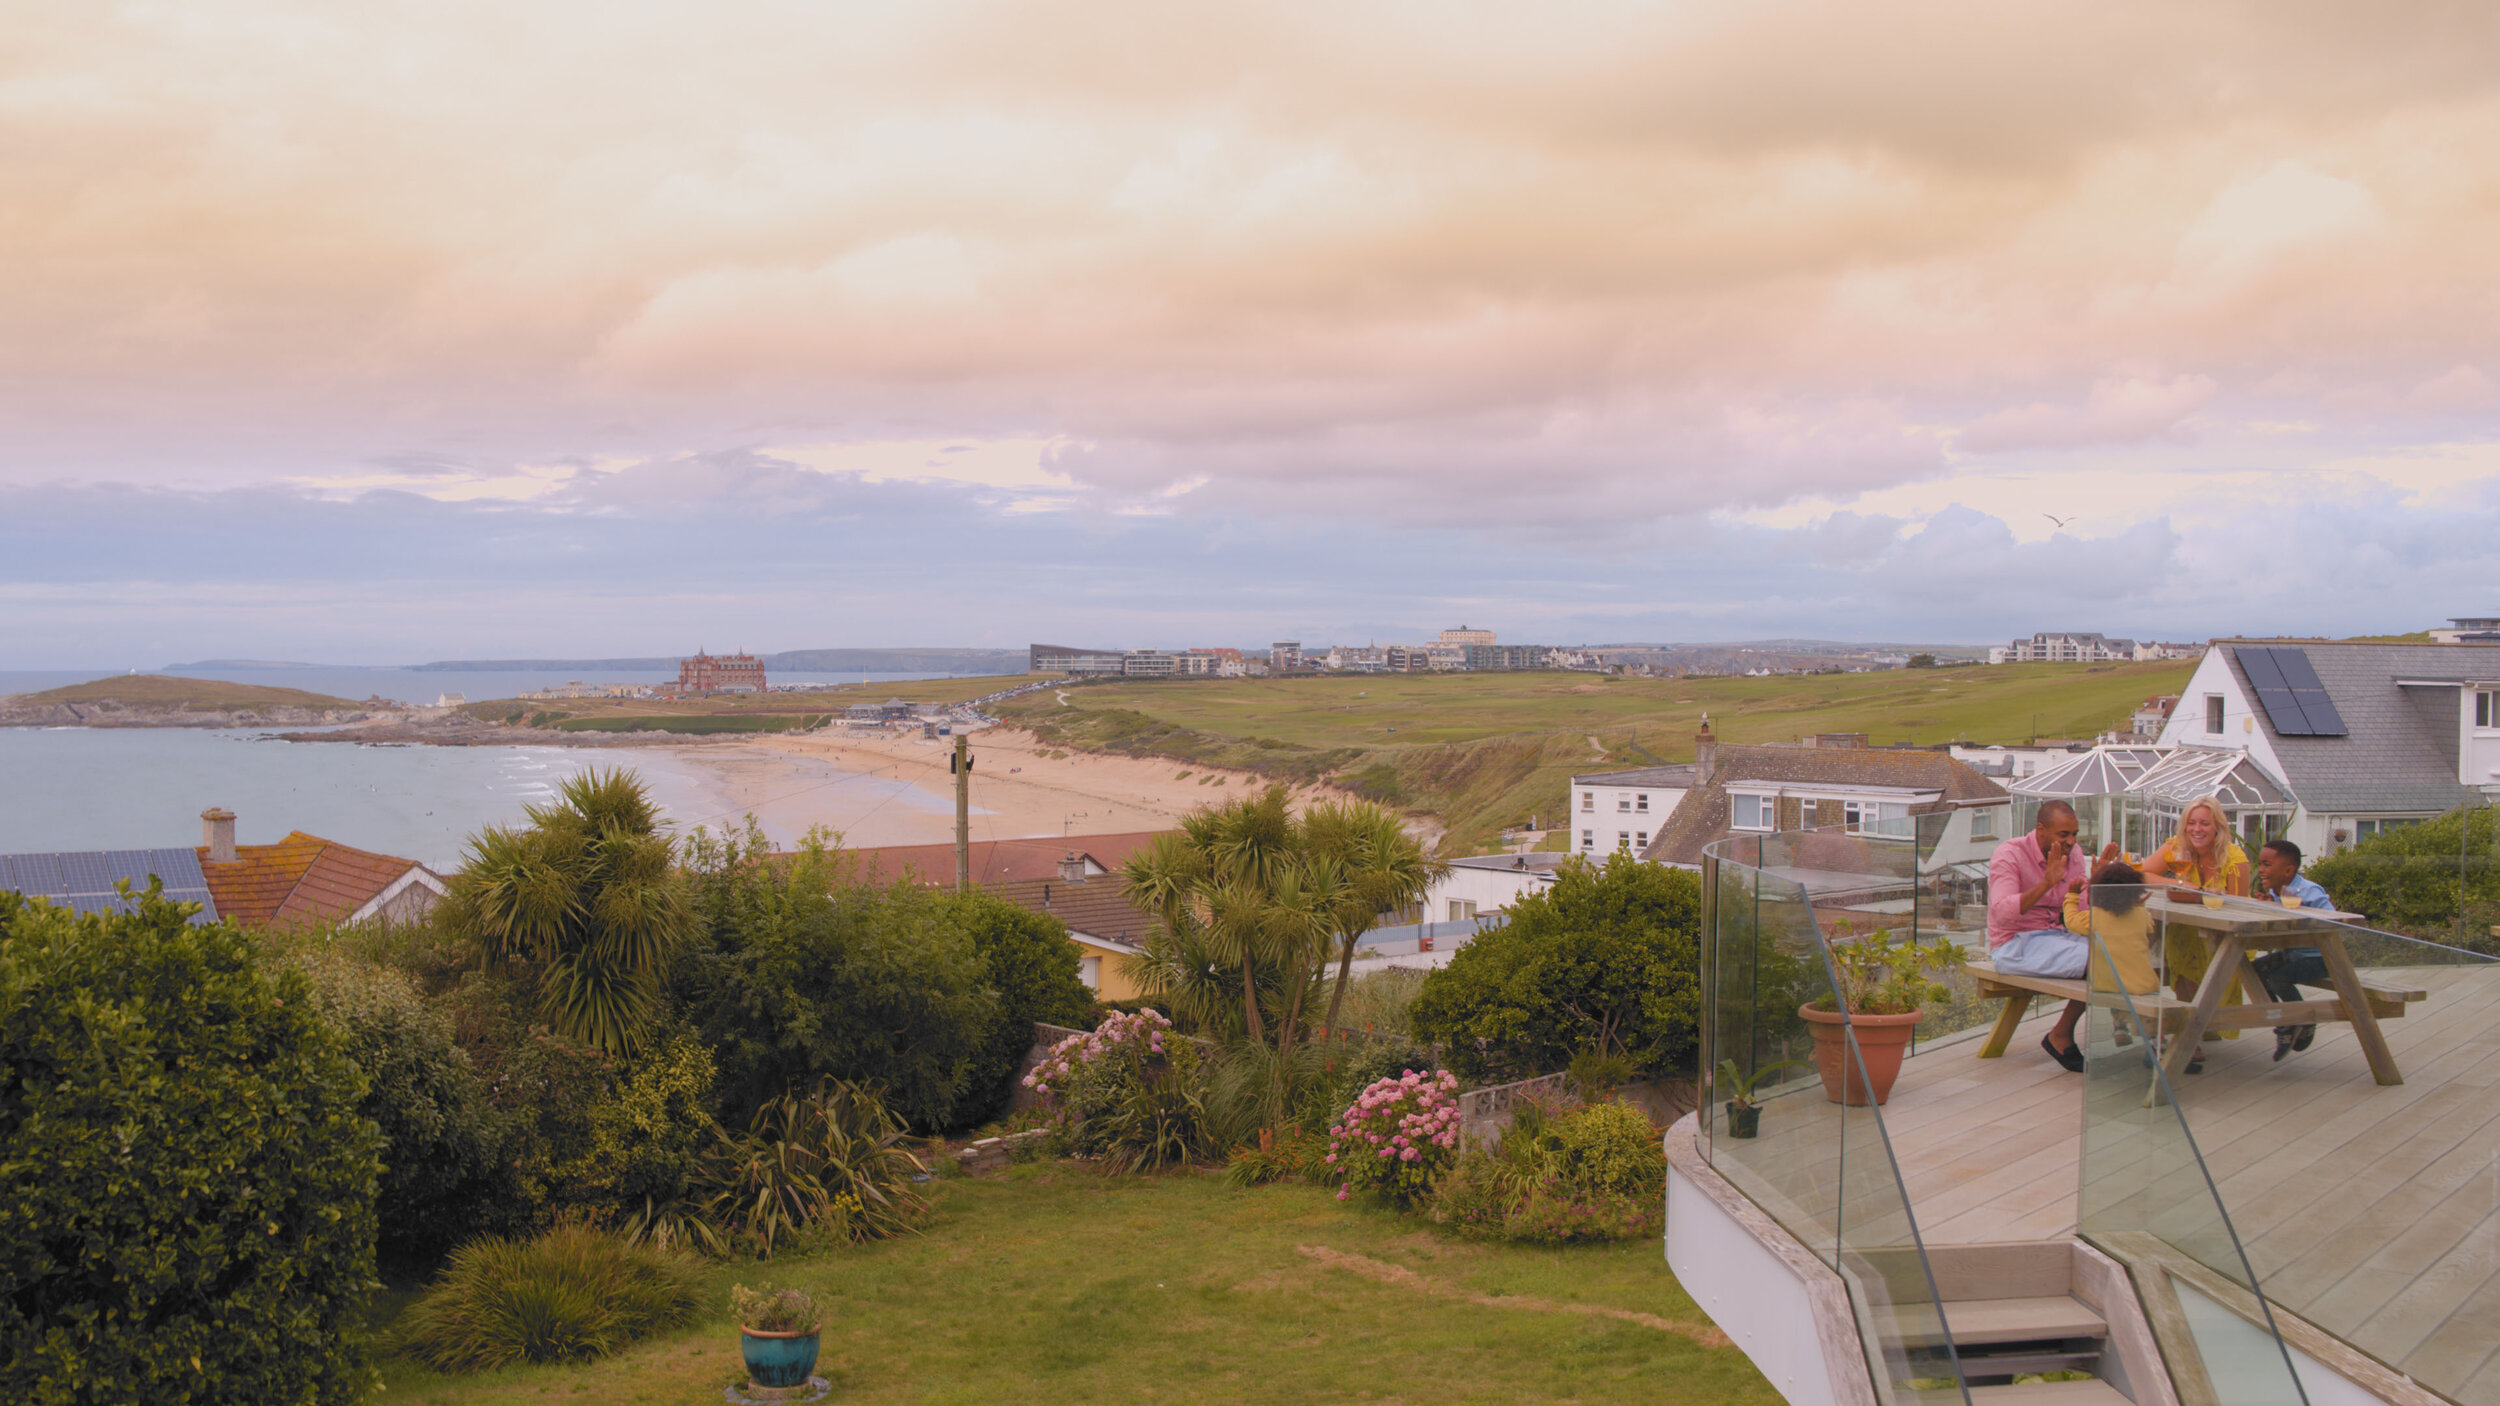 Original Cottages TV advertising campaign was filmed at Red Rails in Newquay